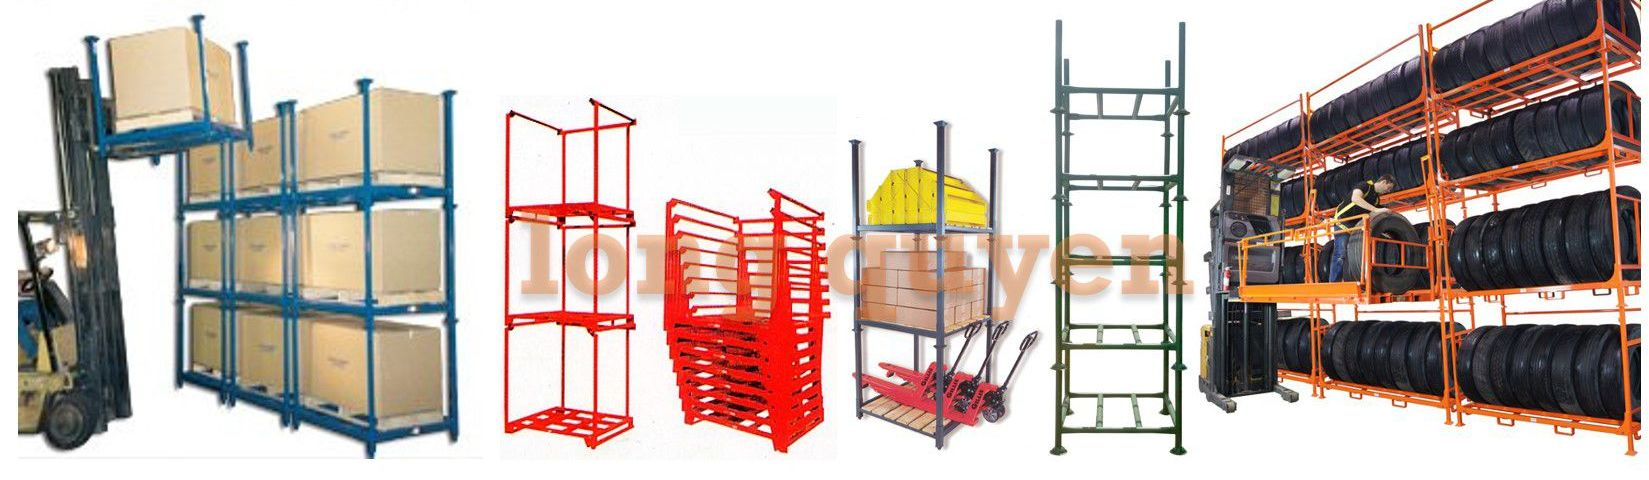 Pallet thung hop_03_compressed